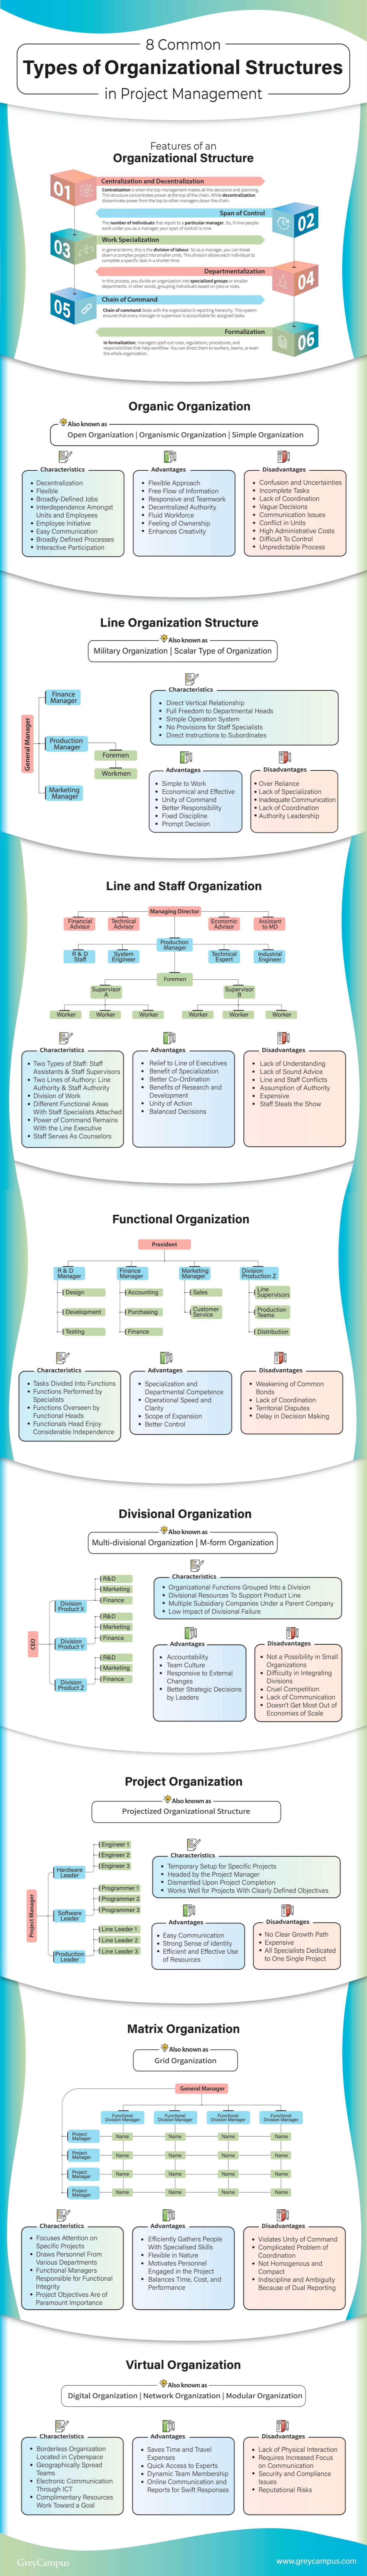 types or organizational structures in project management